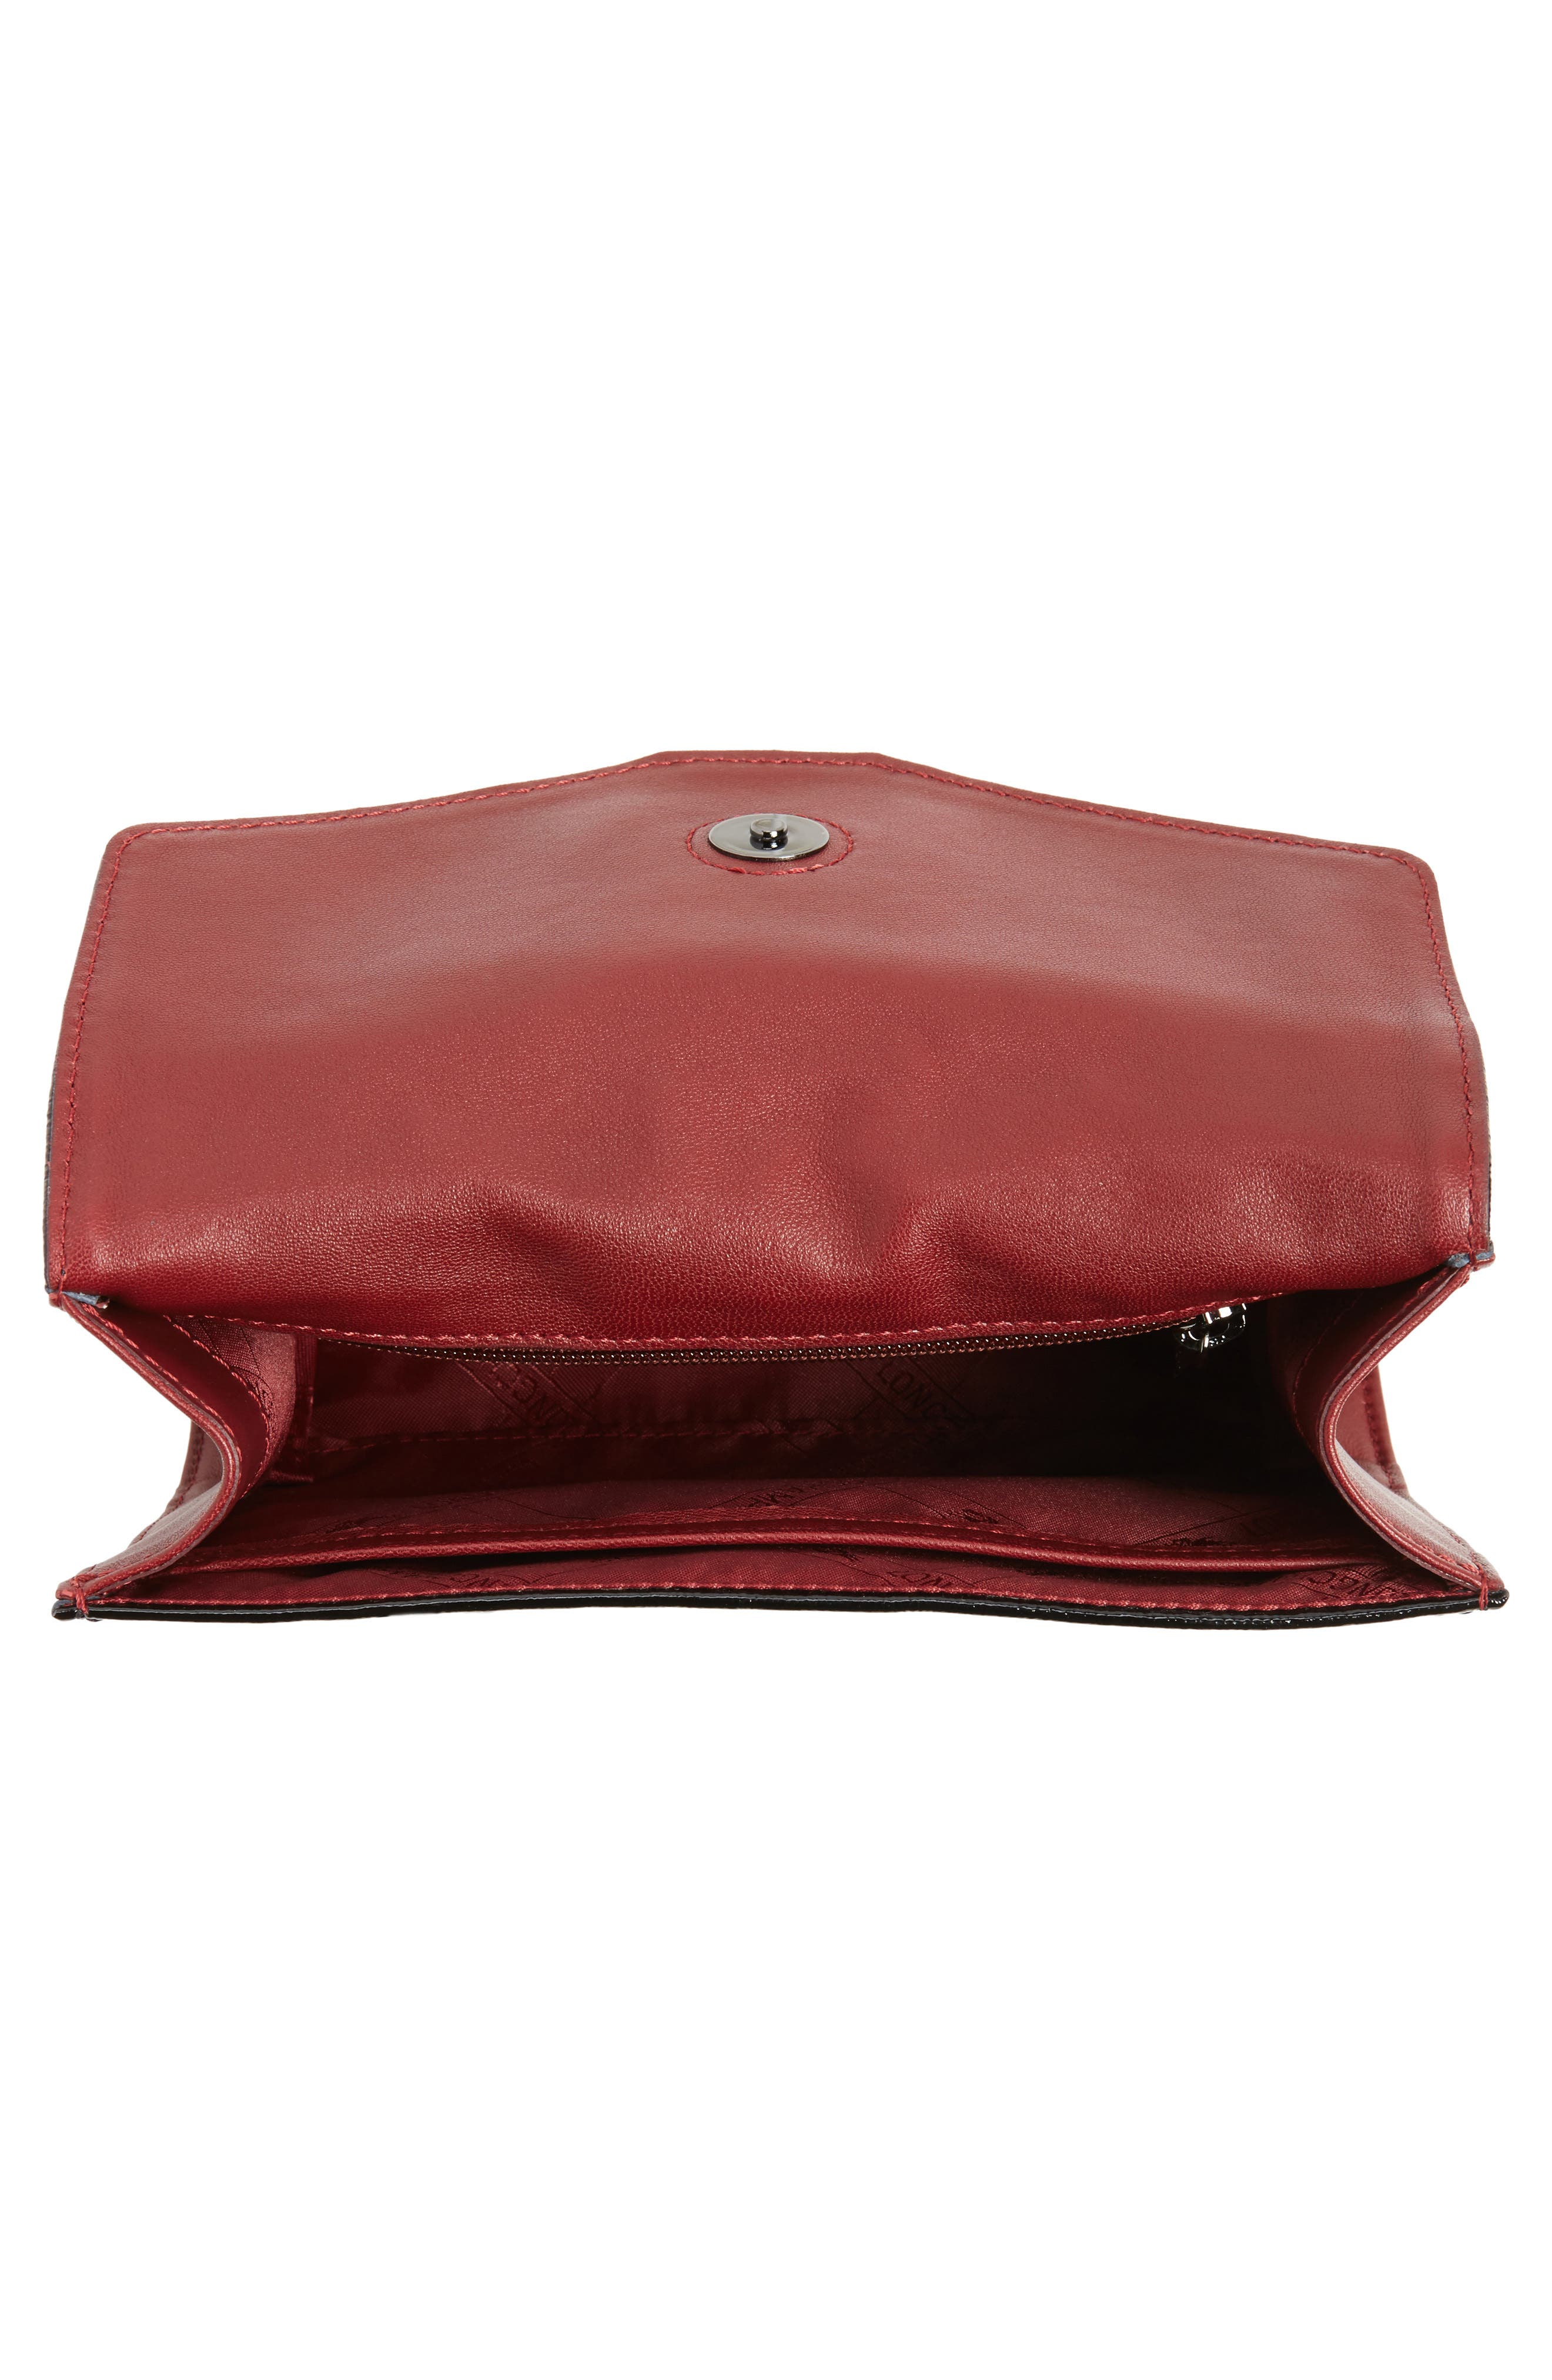 Alternate Image 3  - Longchamp La Baronne Genuine Shearling Trim Leather Clutch